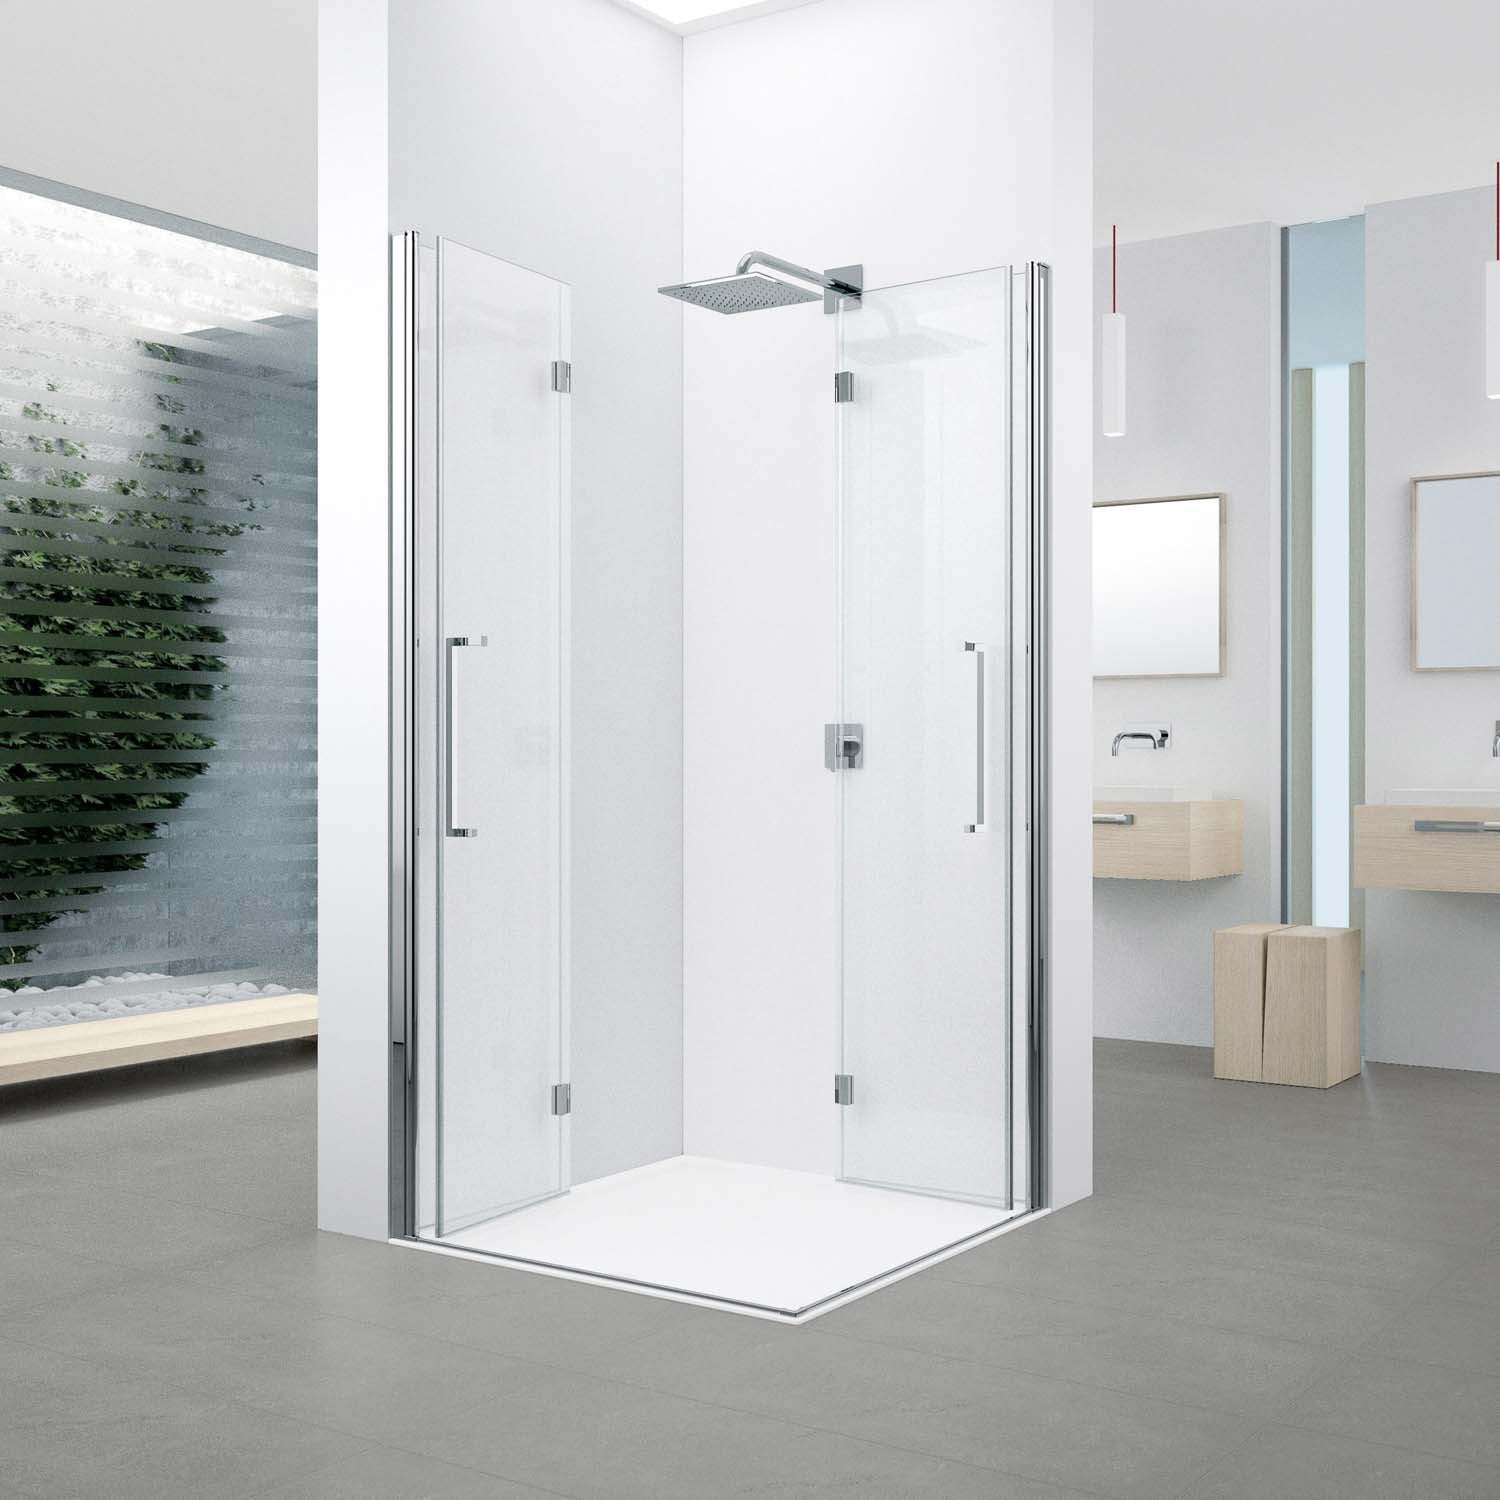 1050-1070mm Bliss Bi-folding Screen Frosted Glass with a chrome finish lifestyle image